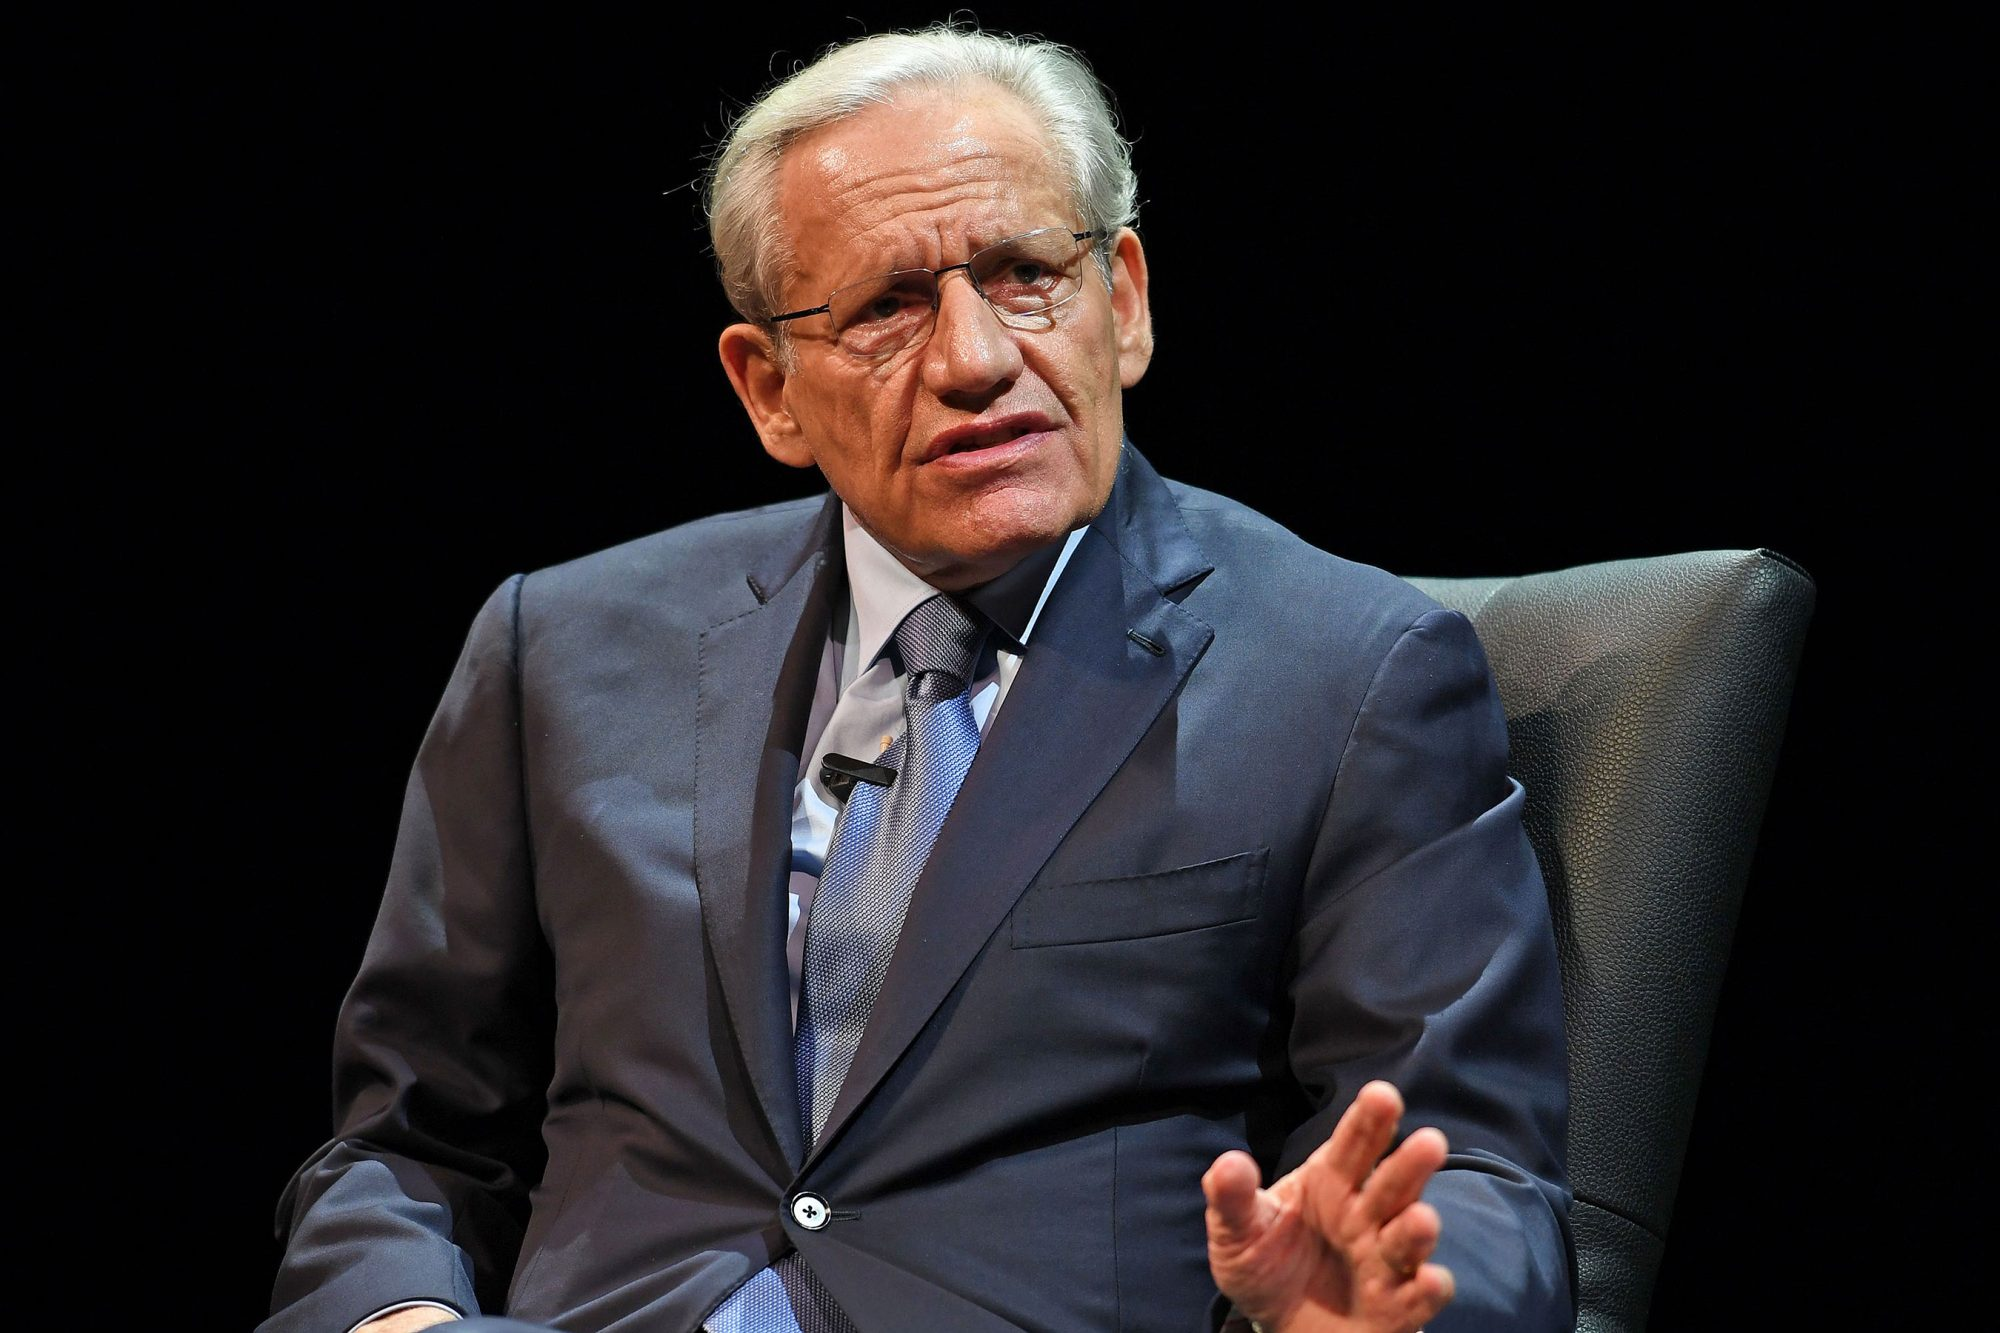 An evening with Bob Woodward discusing his new book 'FEAR Trump in the White House' at Coral Springs Center for the Arts, Coral Springs, Florida, USA - 15 Oct 2018